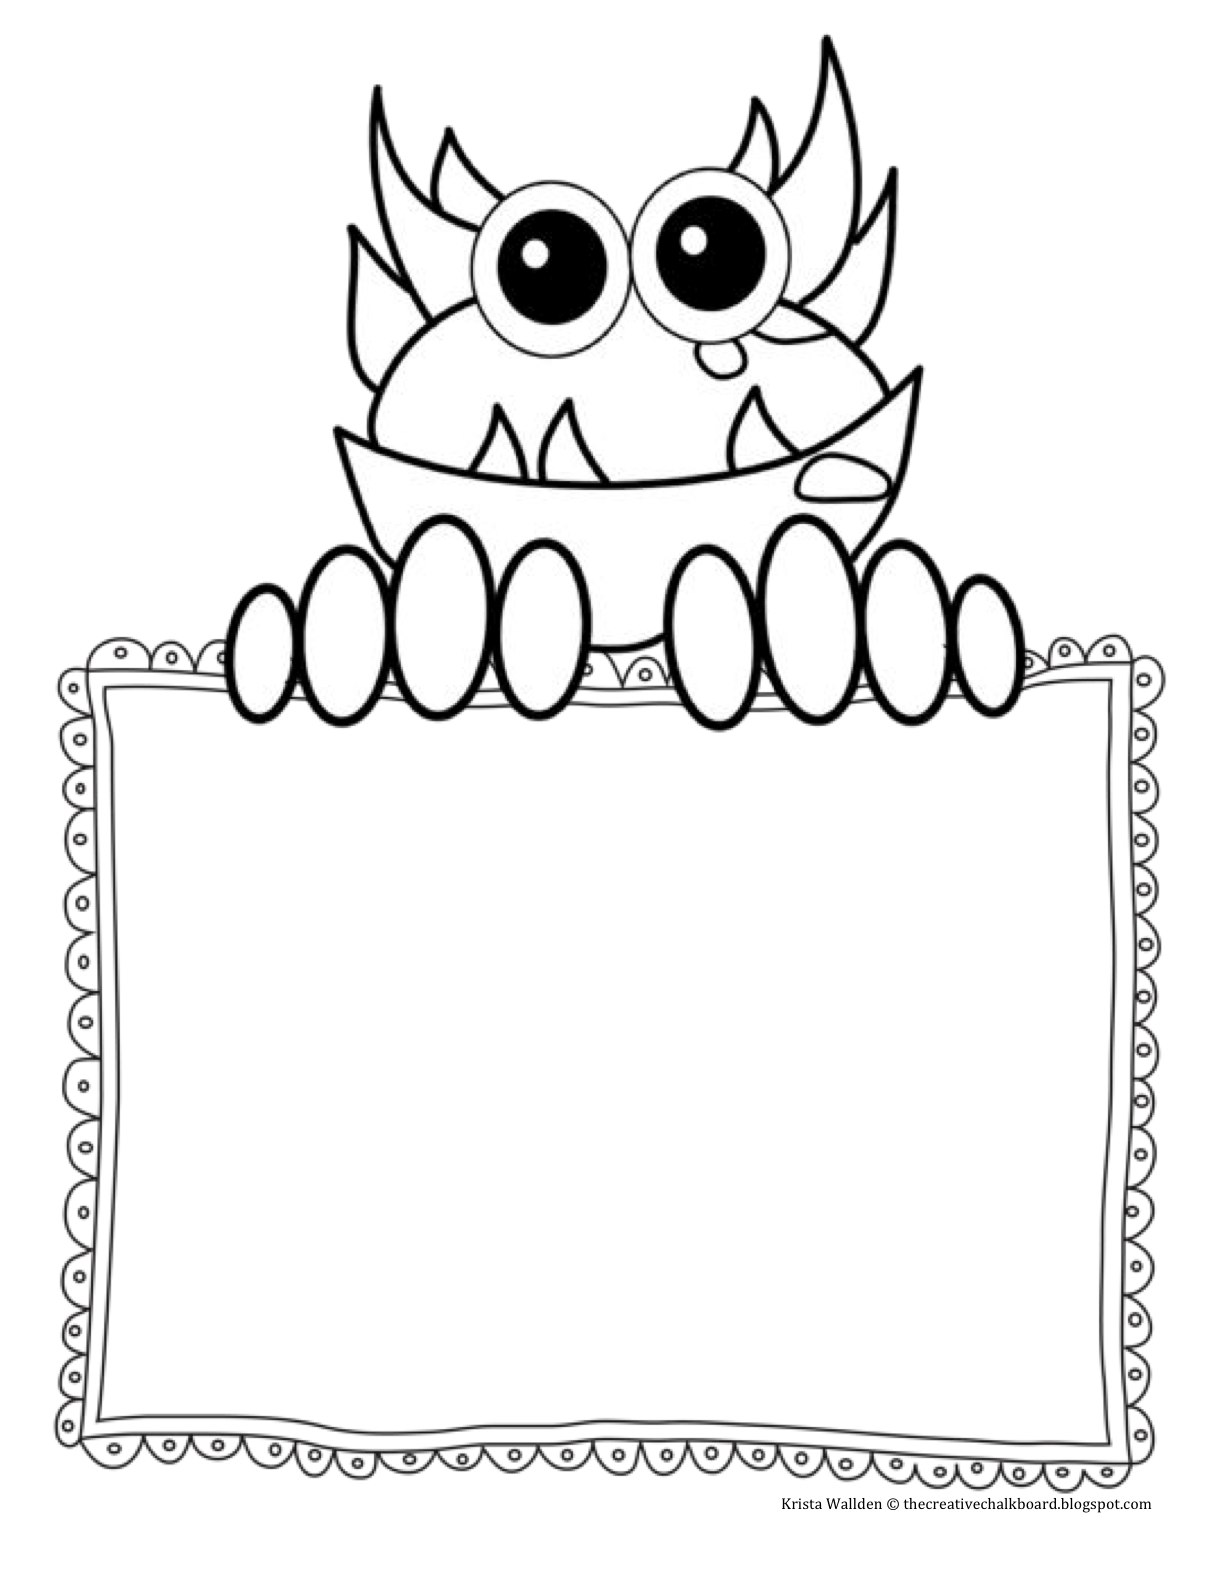 template mosnter - the creative chalkboard day 2 freebie monster writing